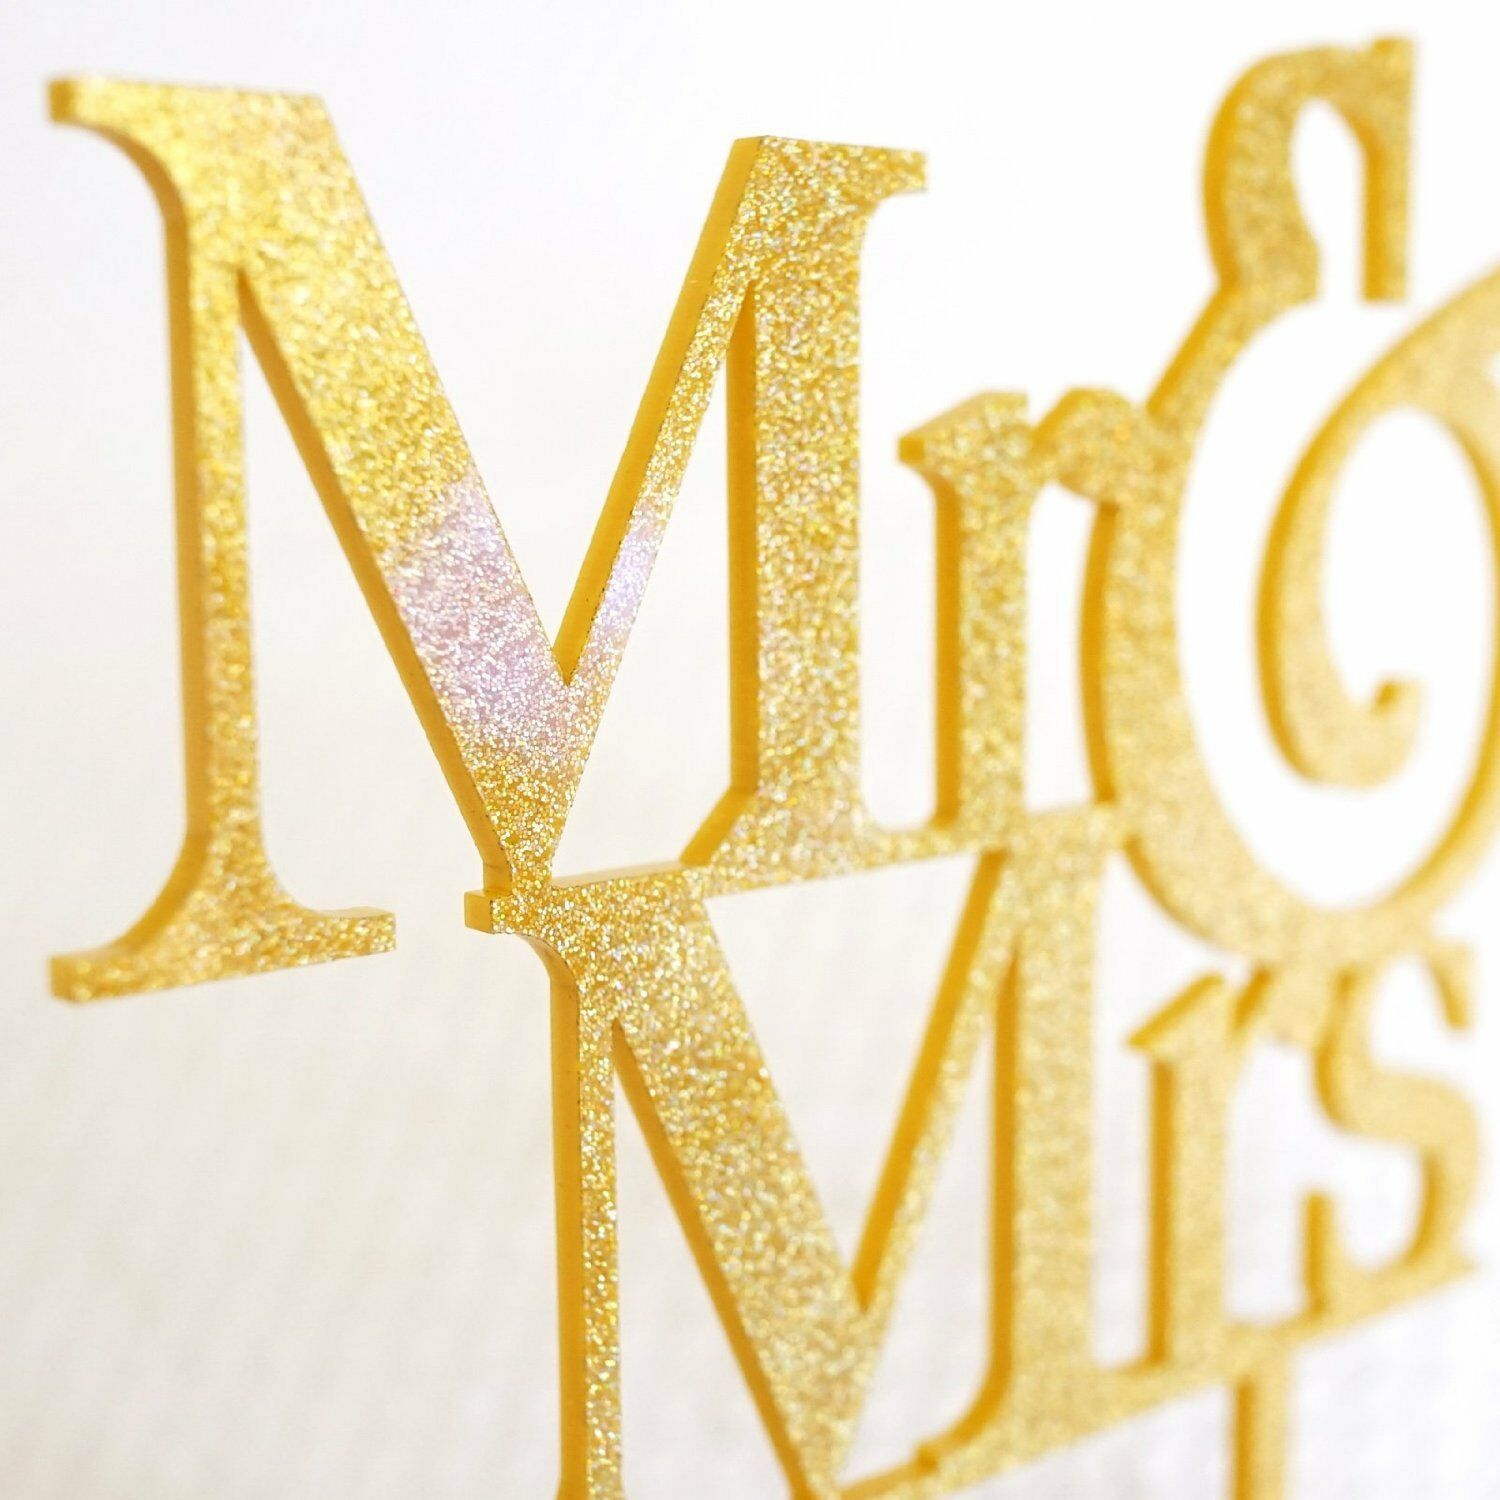 MR AND MRS Gold Glitter Acrylic Cake Topper Bride and Groom Wedding ...